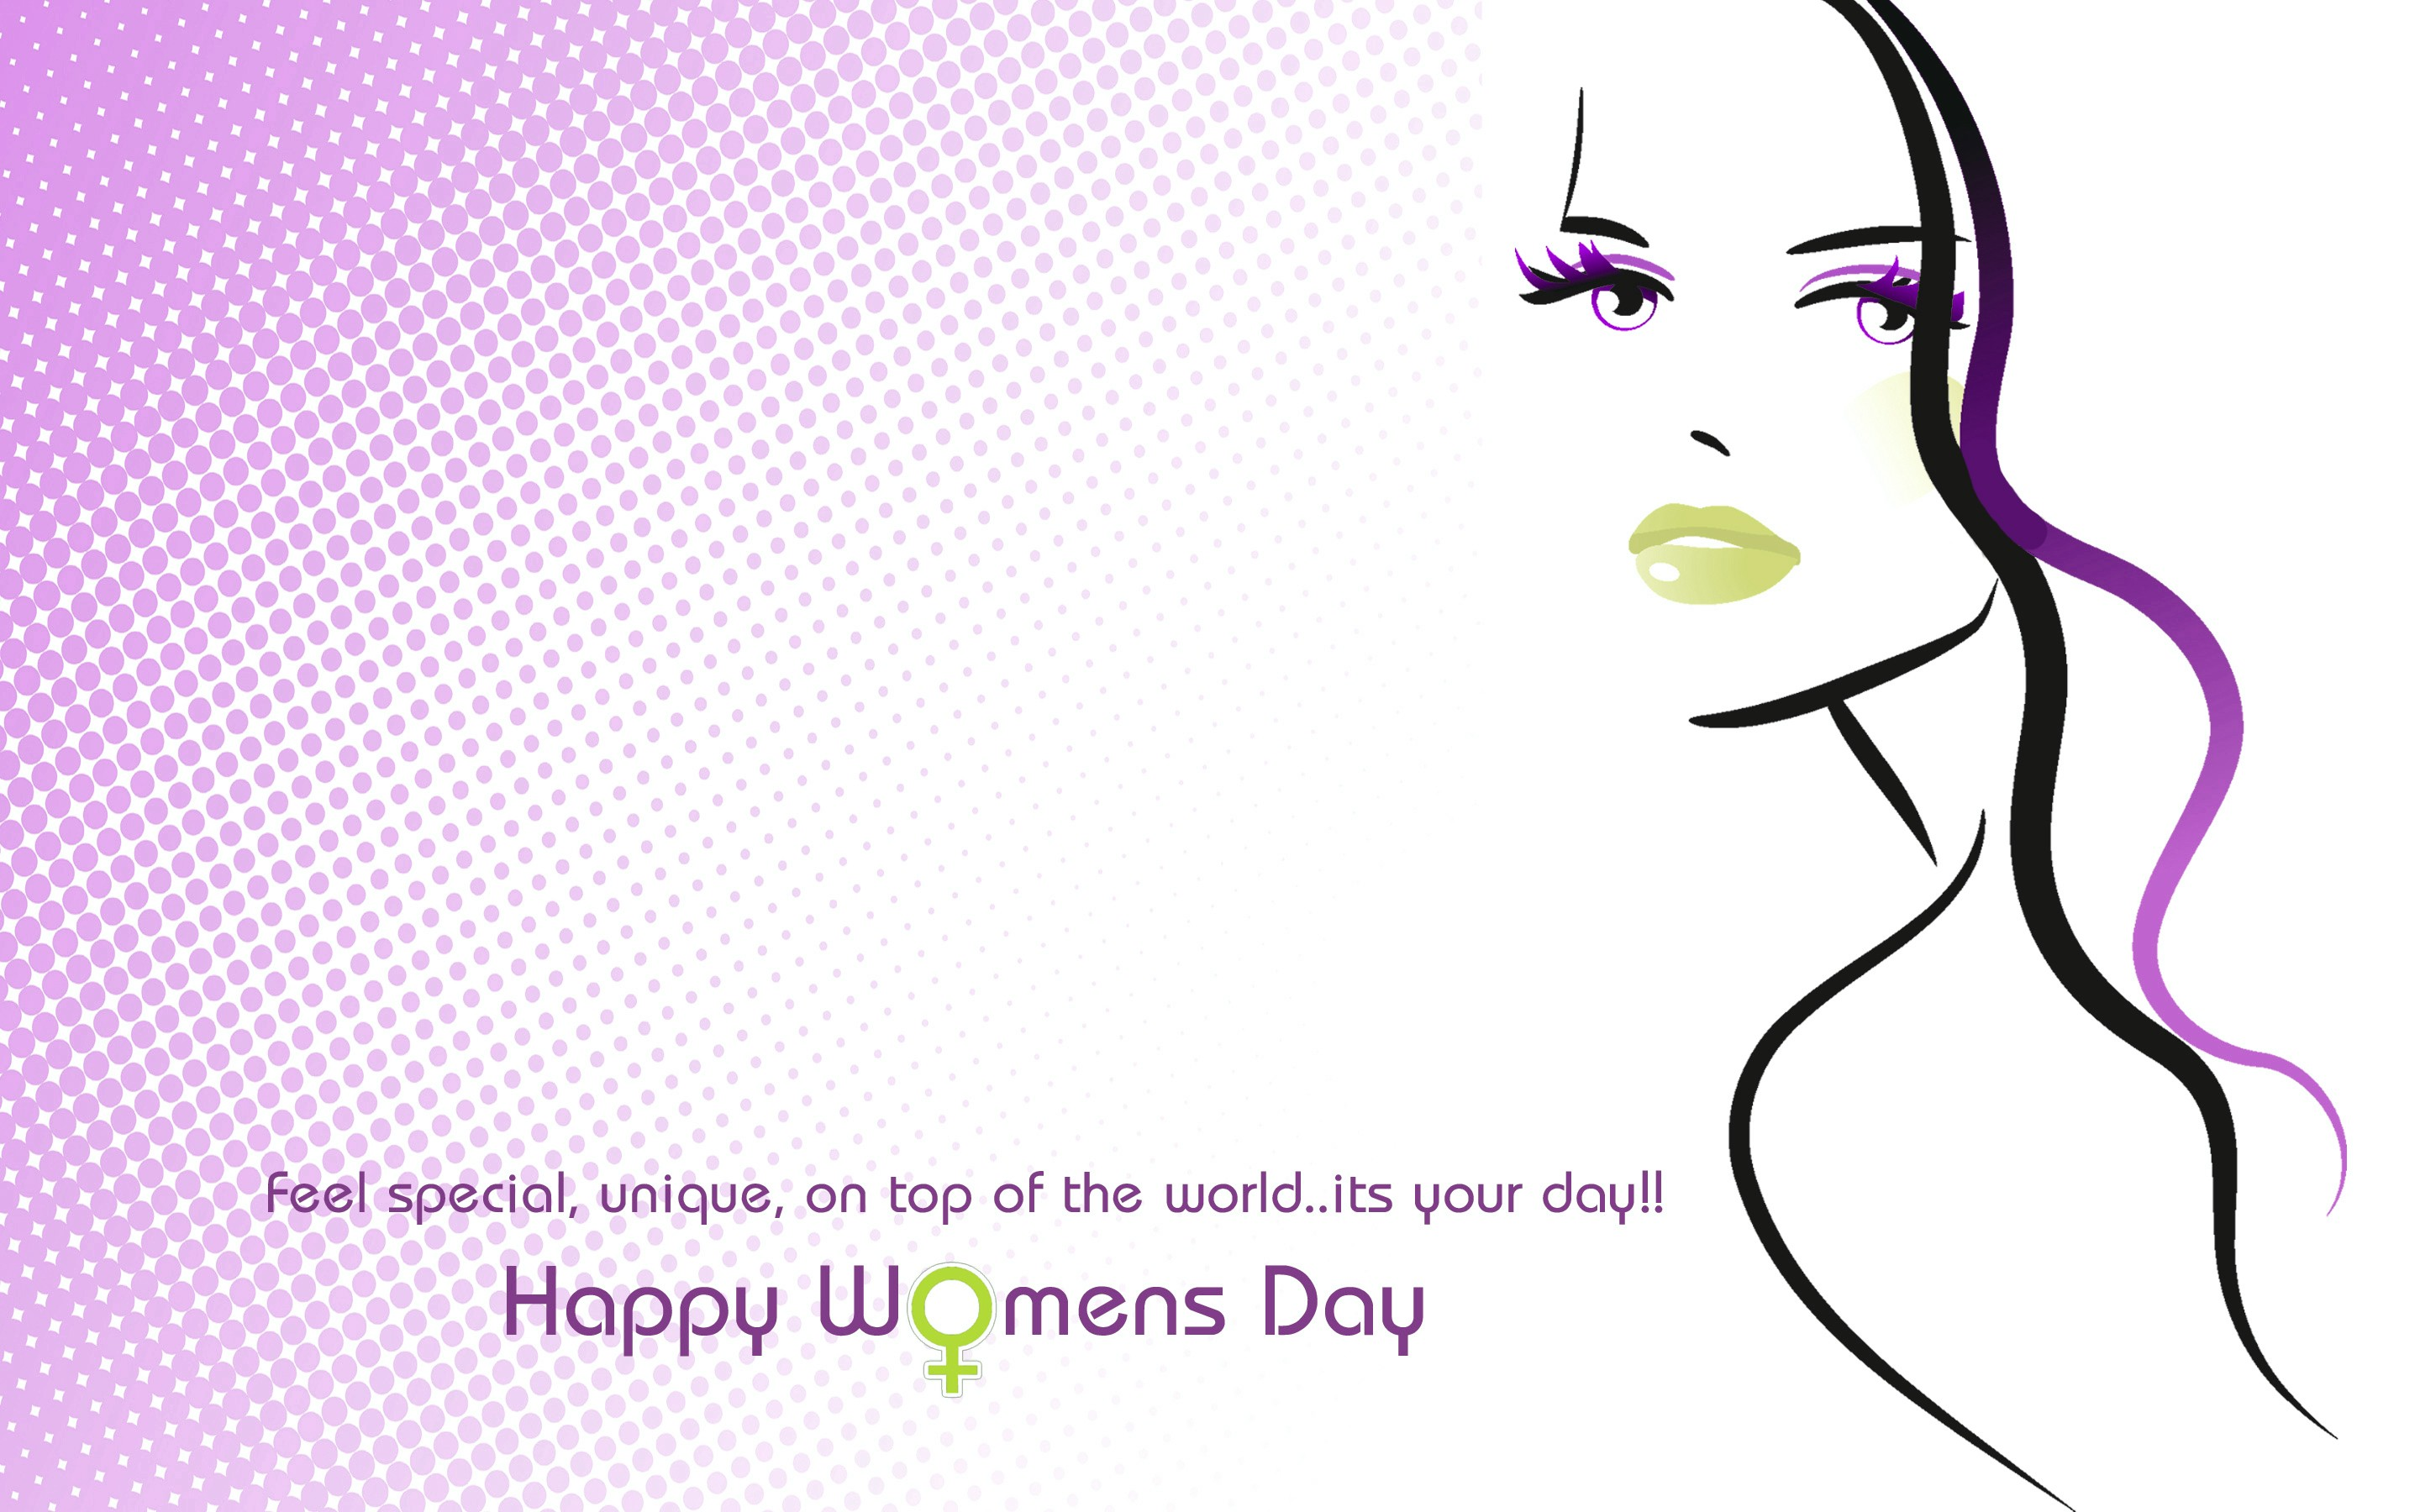 International Women's Day 8th March